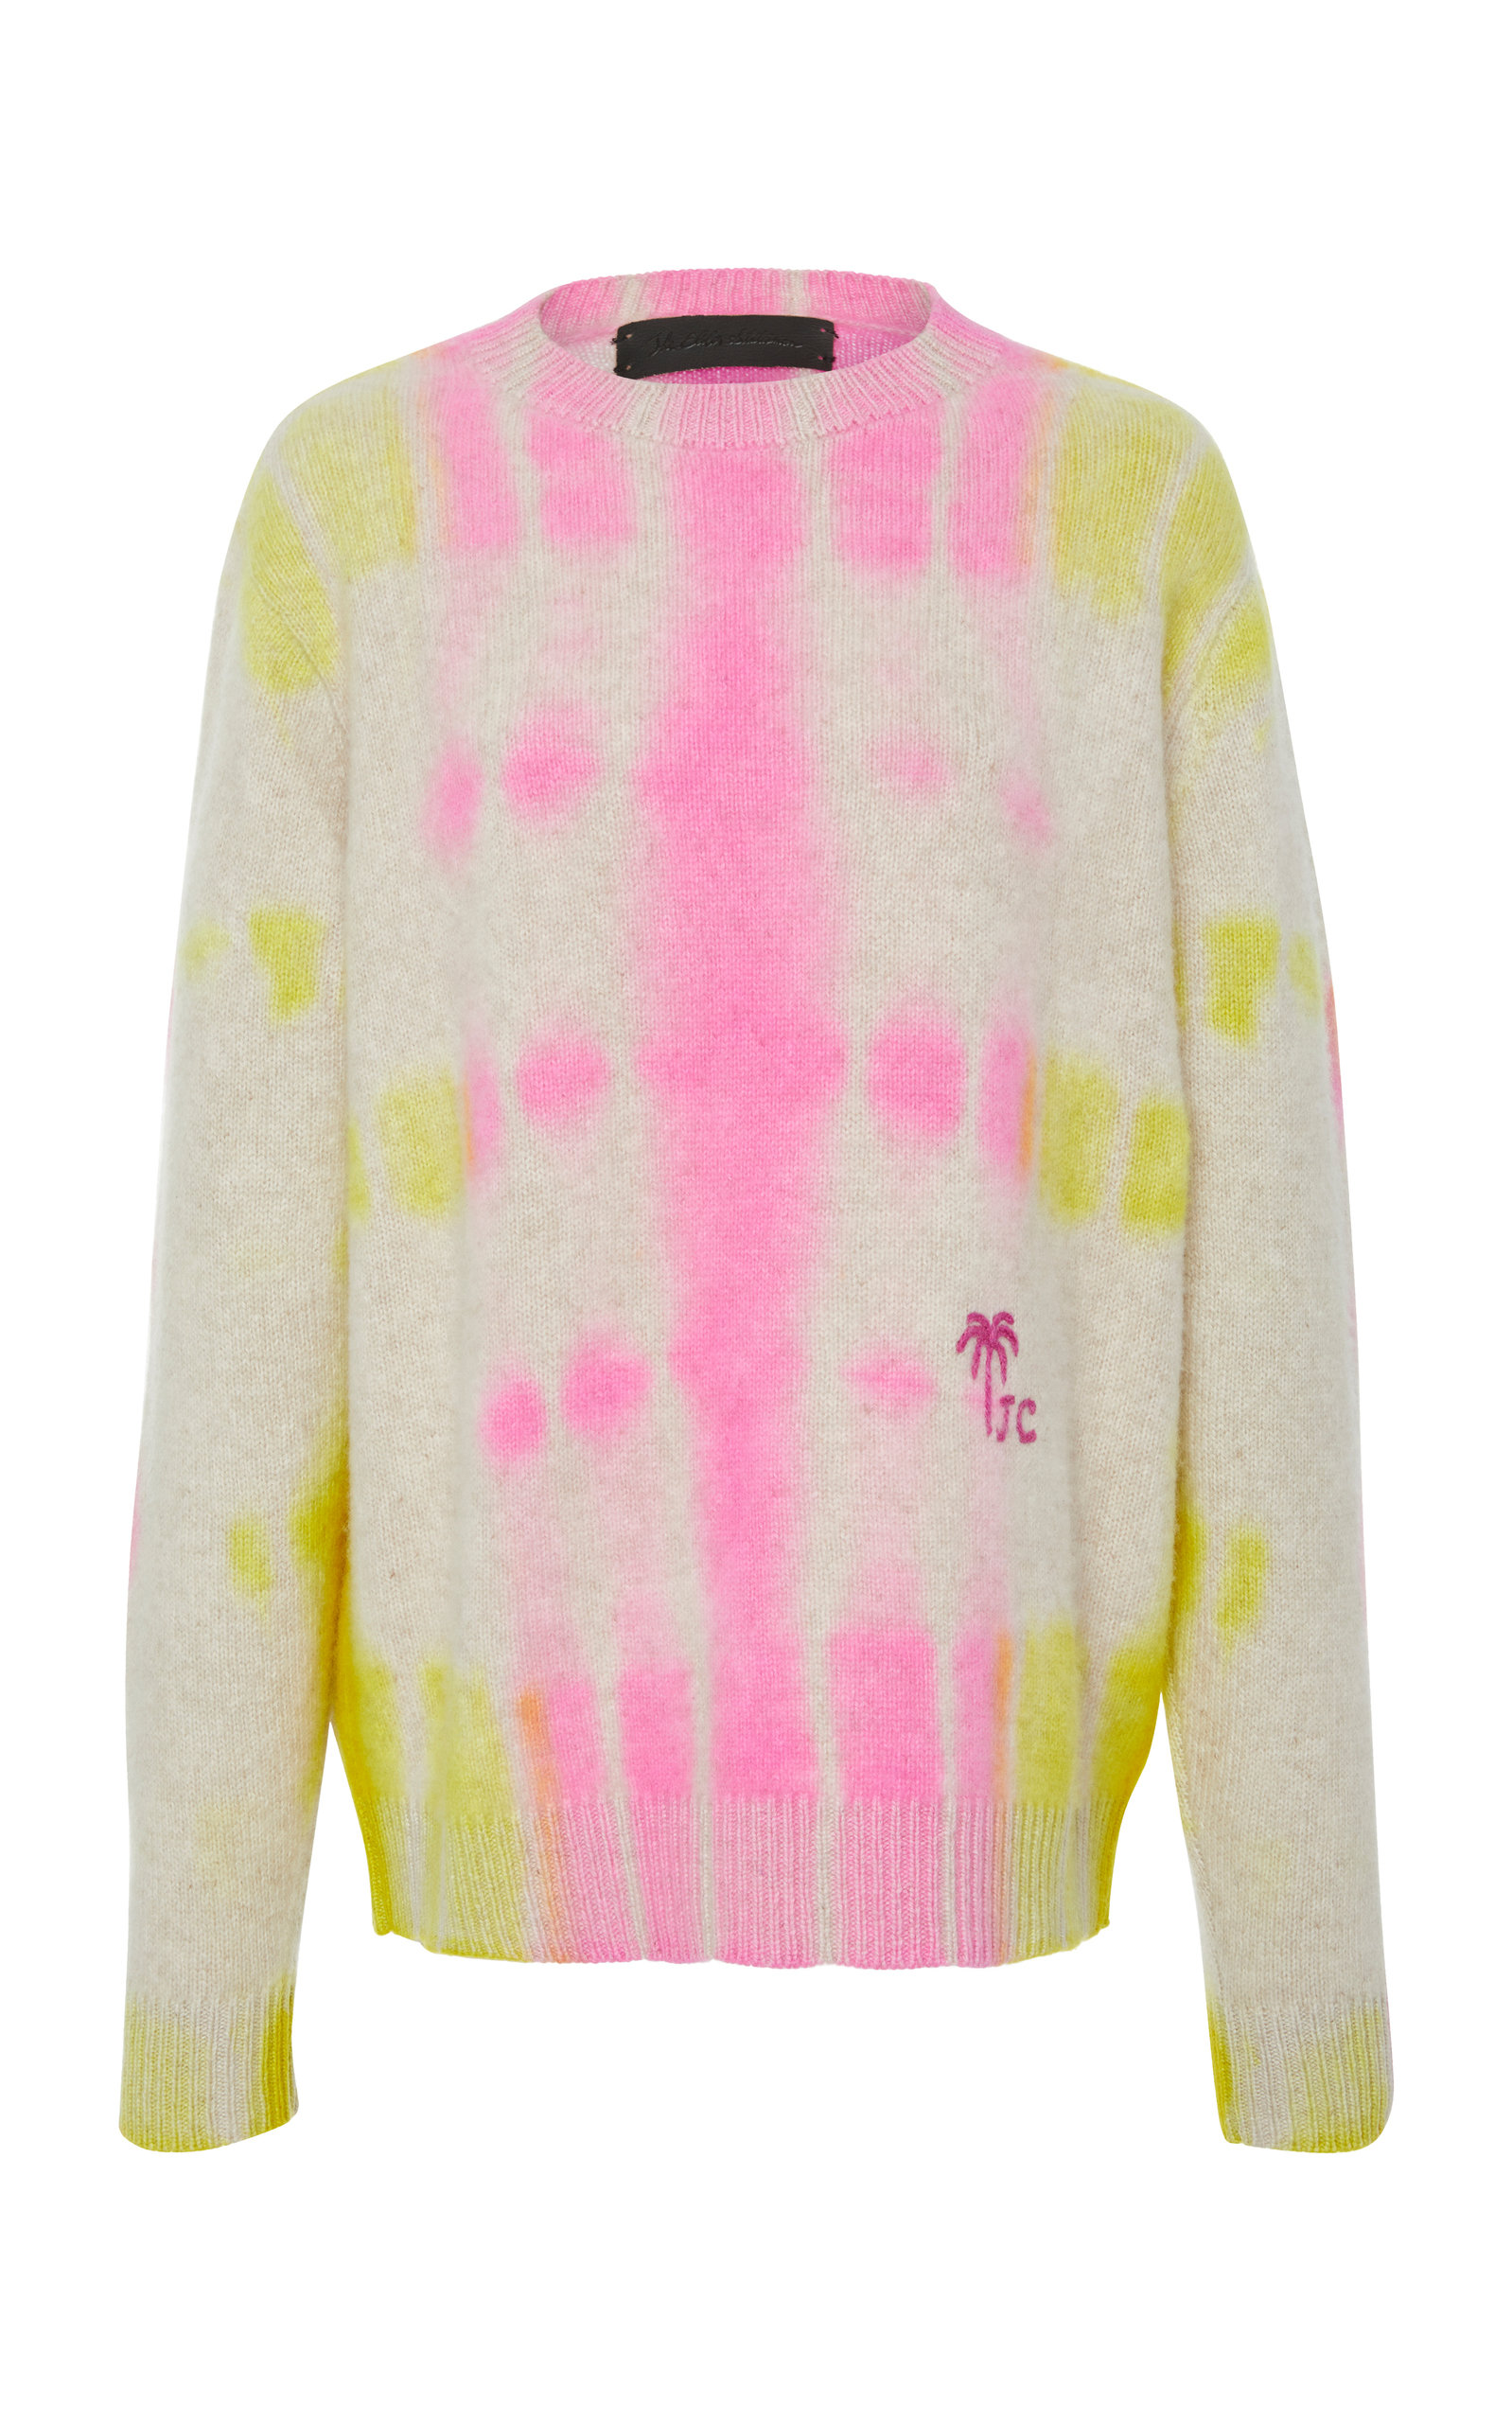 M'ONOGRAMMABLE TIE DYED CREWNECK